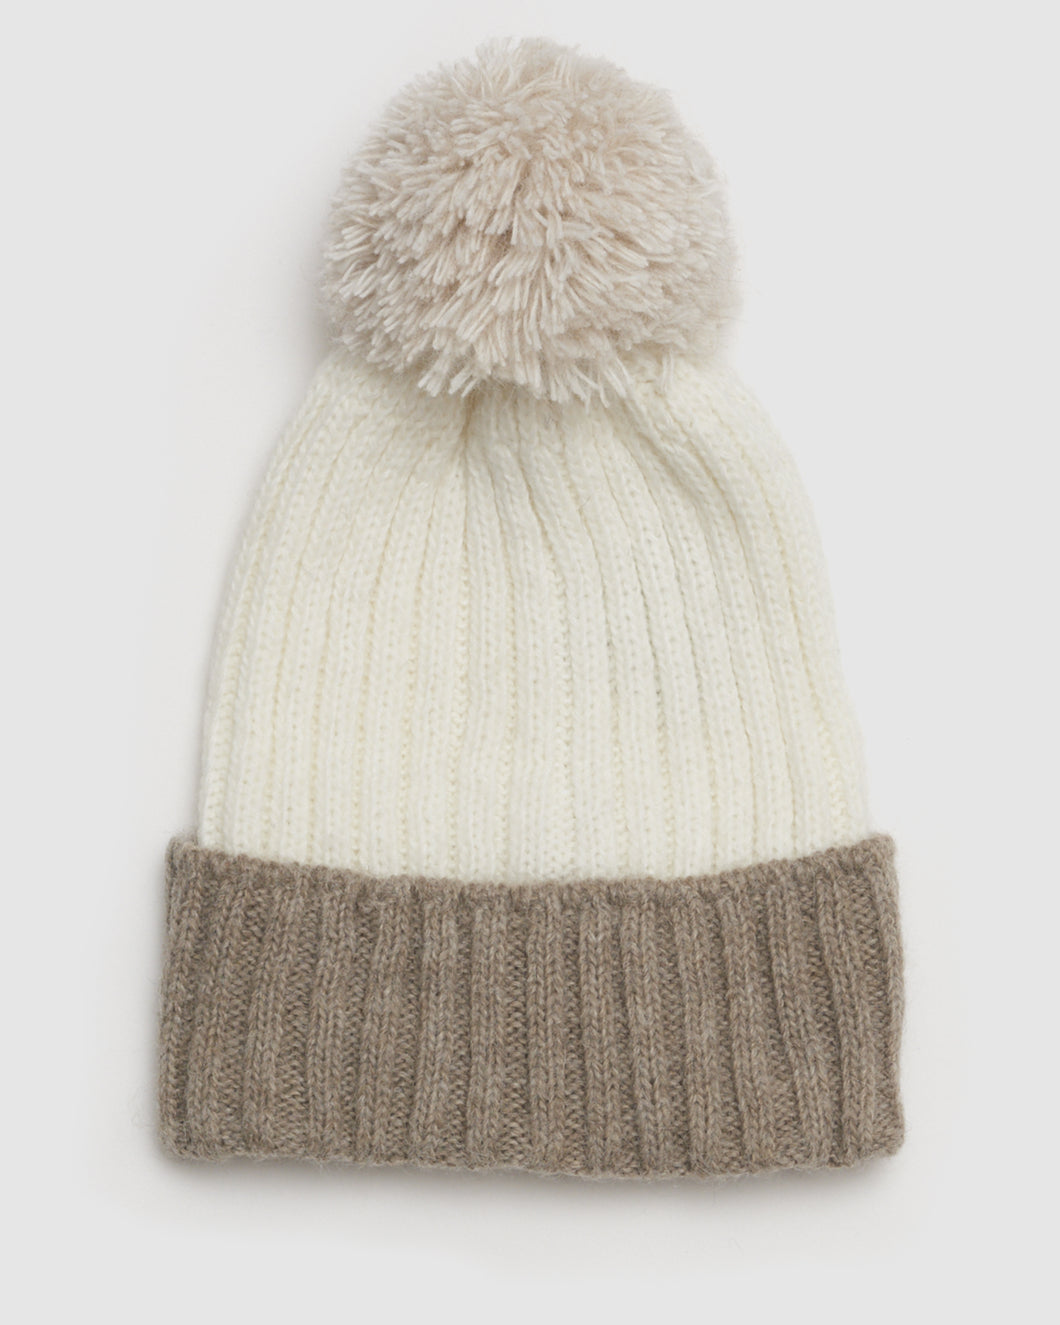 Kate and Confusion wool ladies beanie with pompom in beige and white